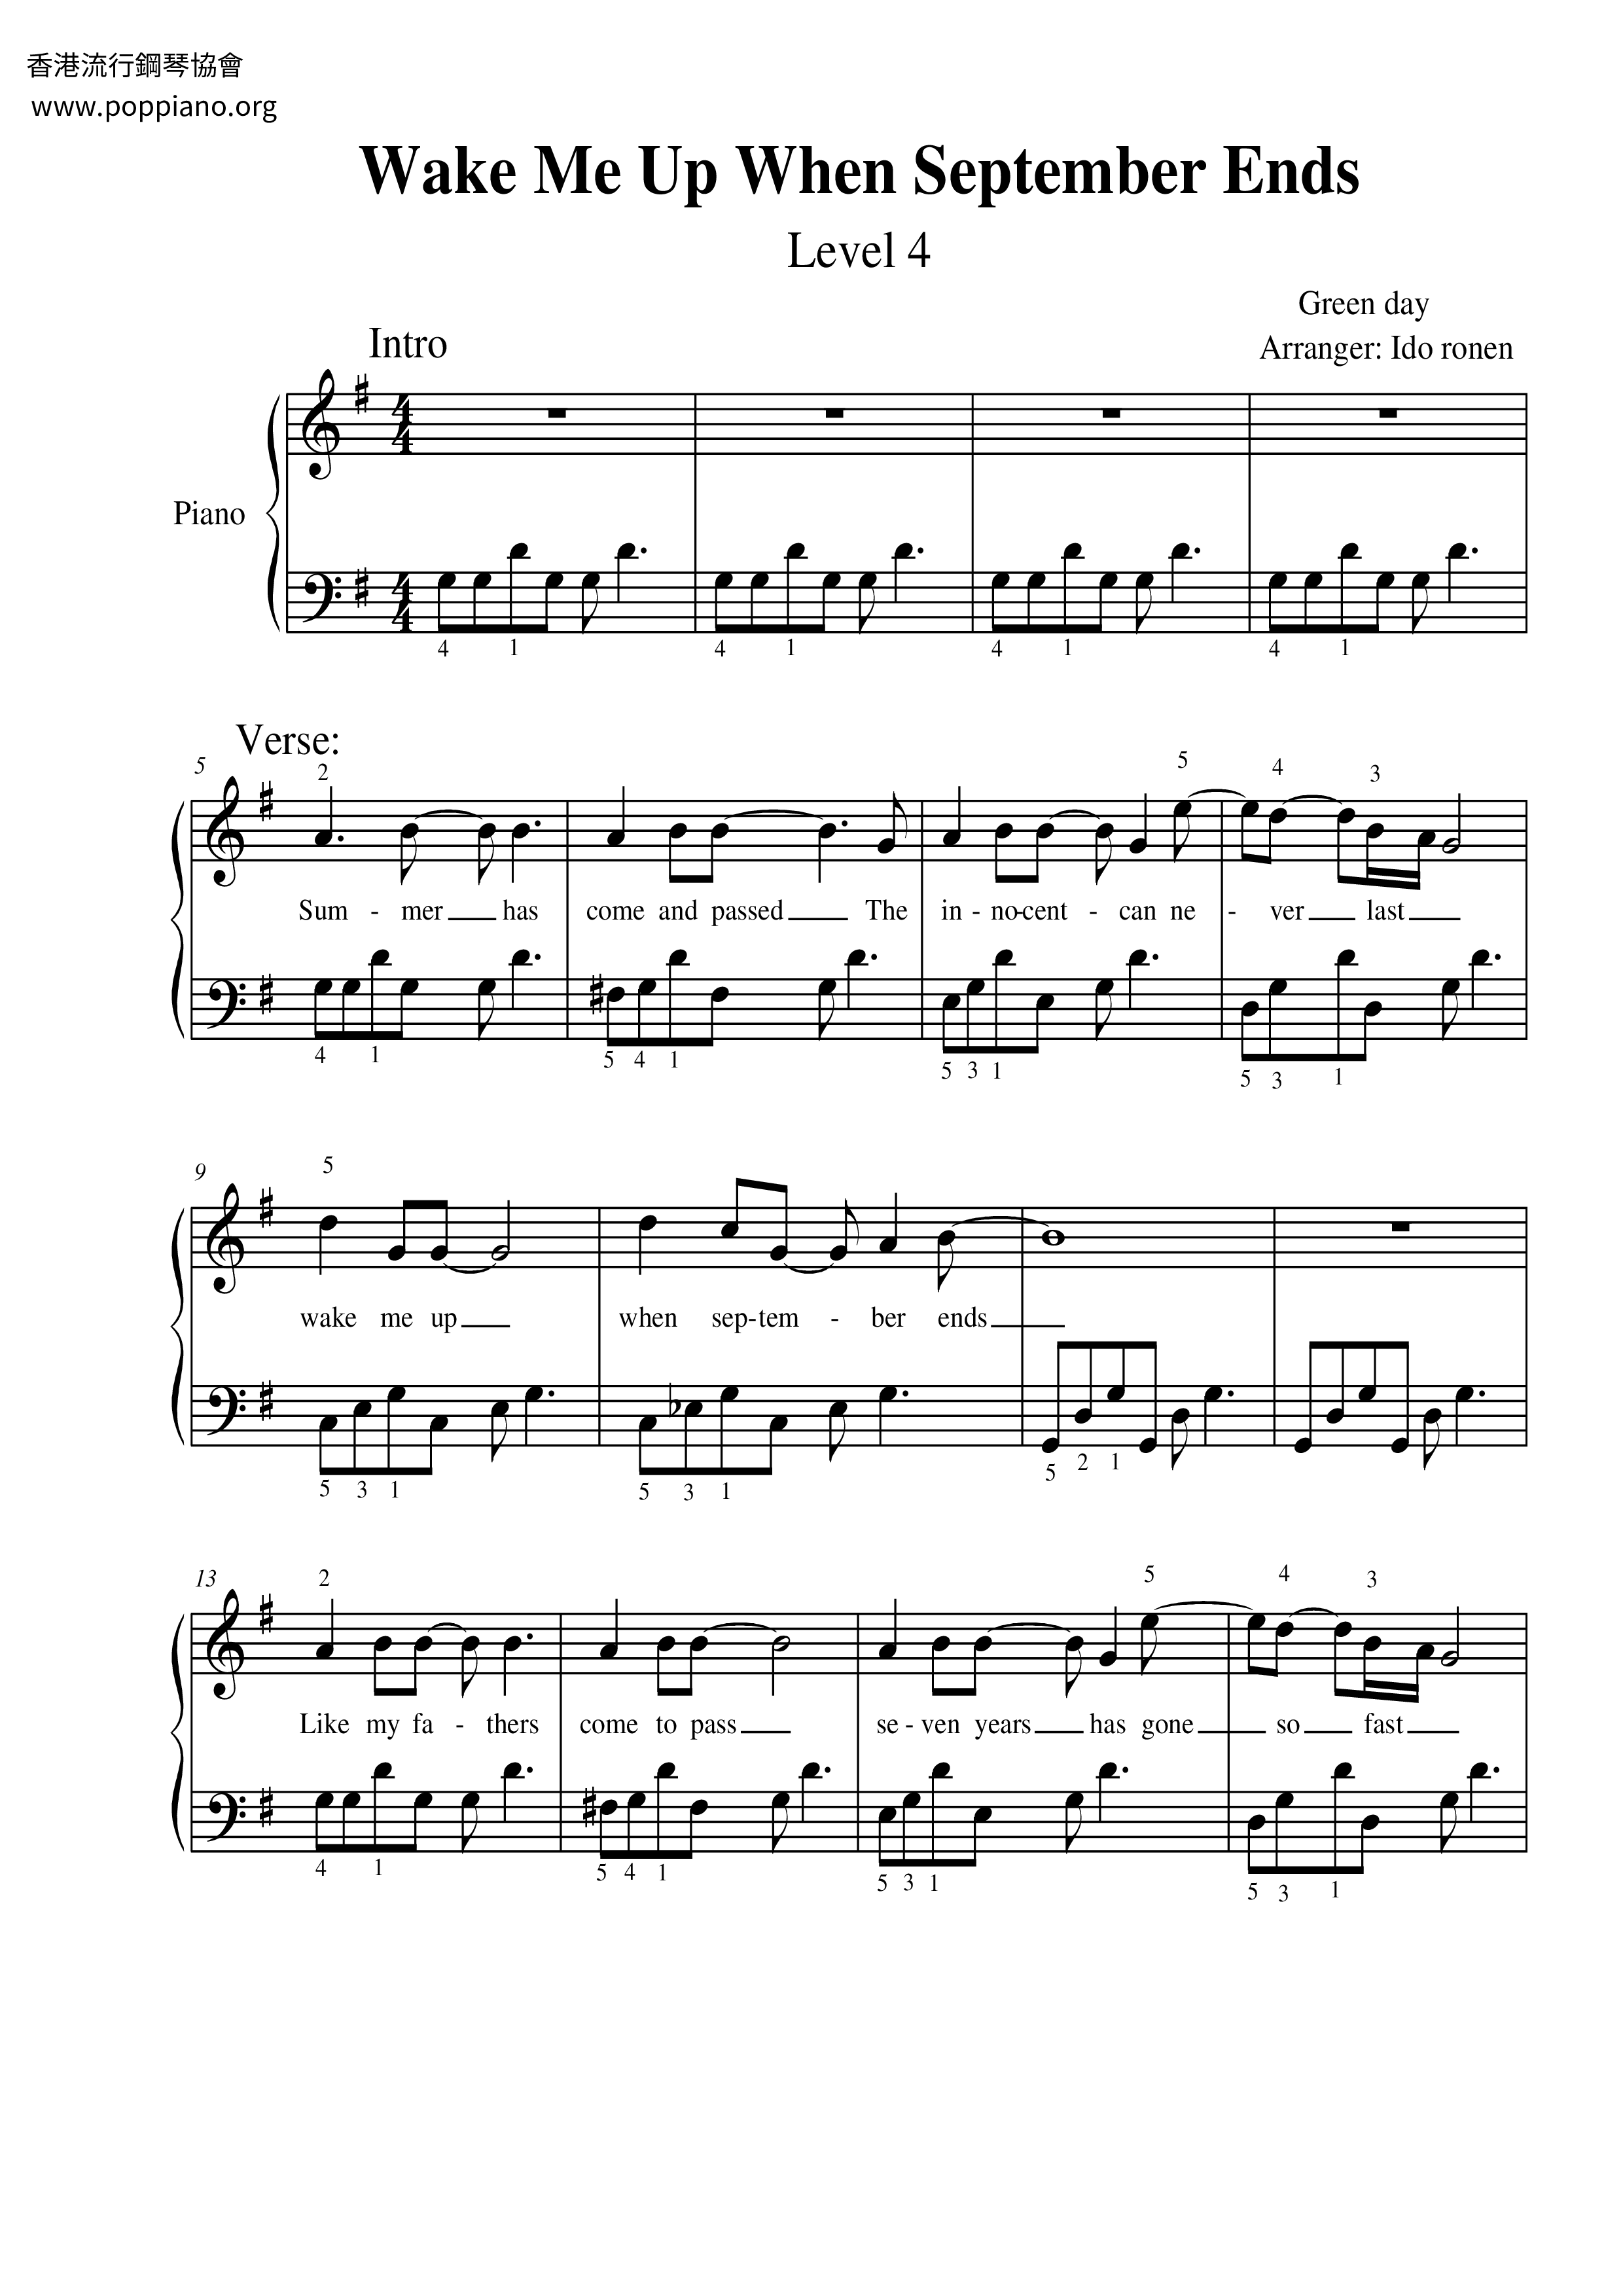 Wake Me Up When September Ends Sheet Music Piano Score Free Pdf Download Hk Pop Piano Academy